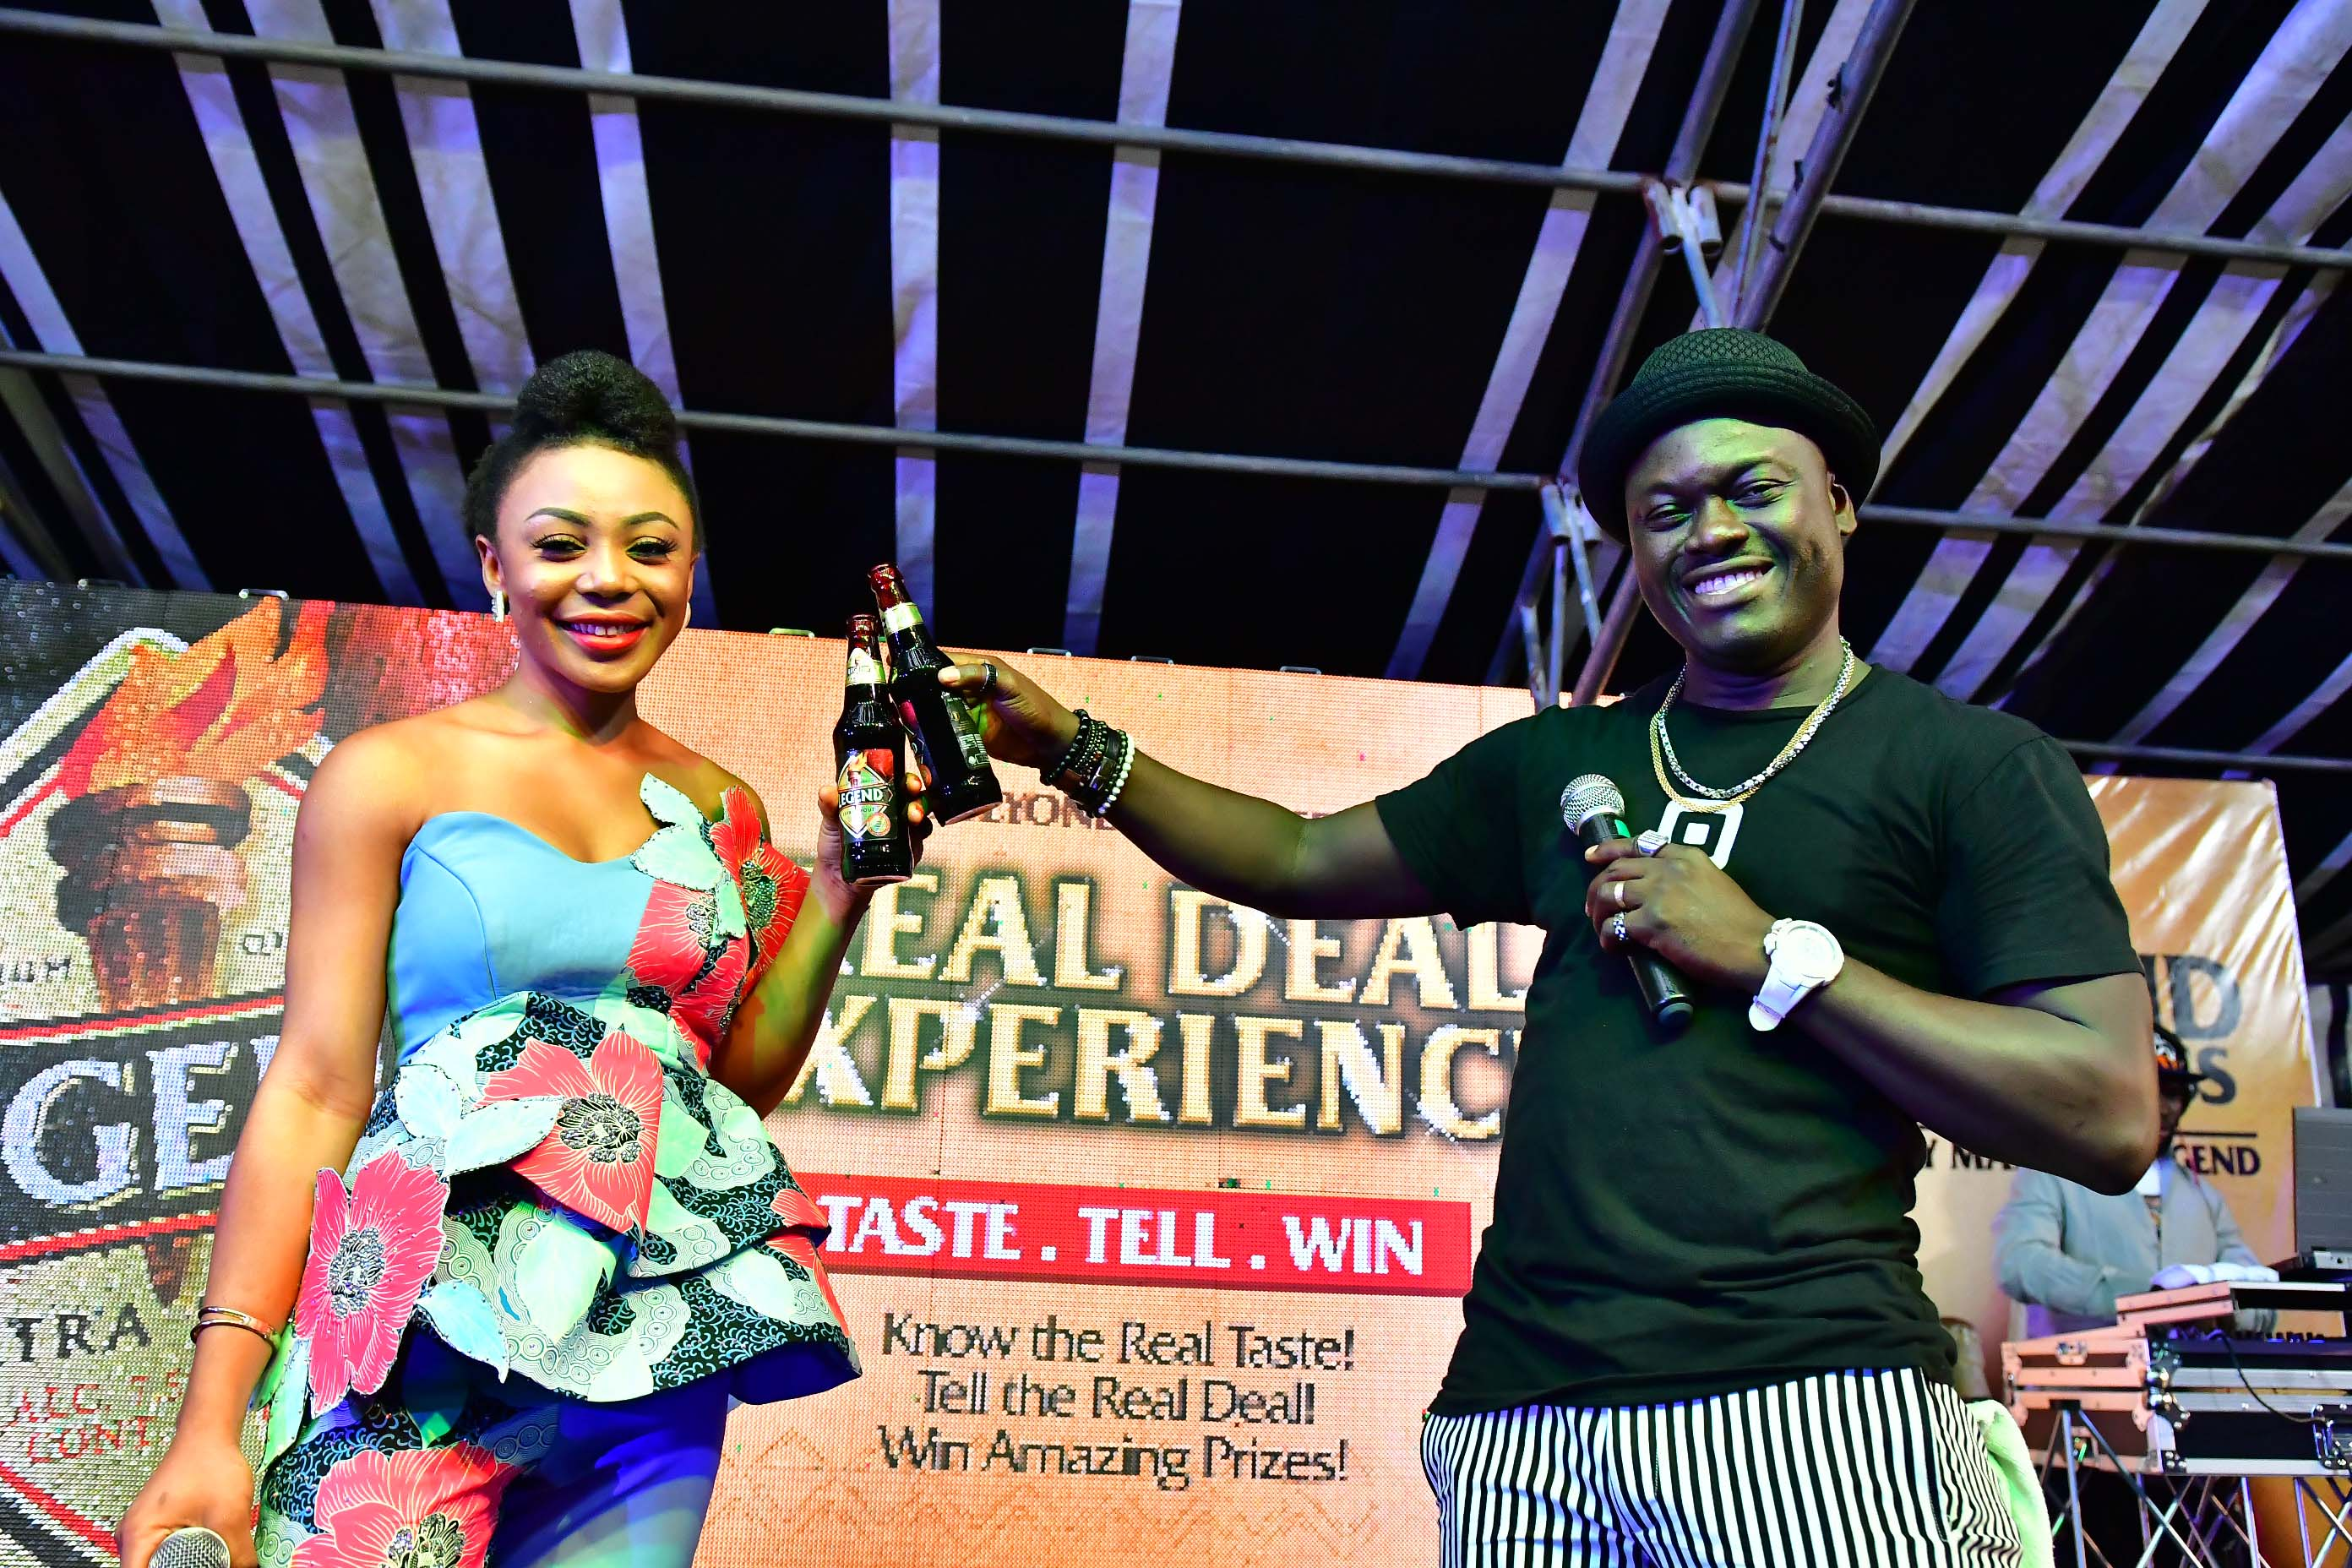 Legend Extra Stout Gives Consumers A Real Deal Experience In Jos